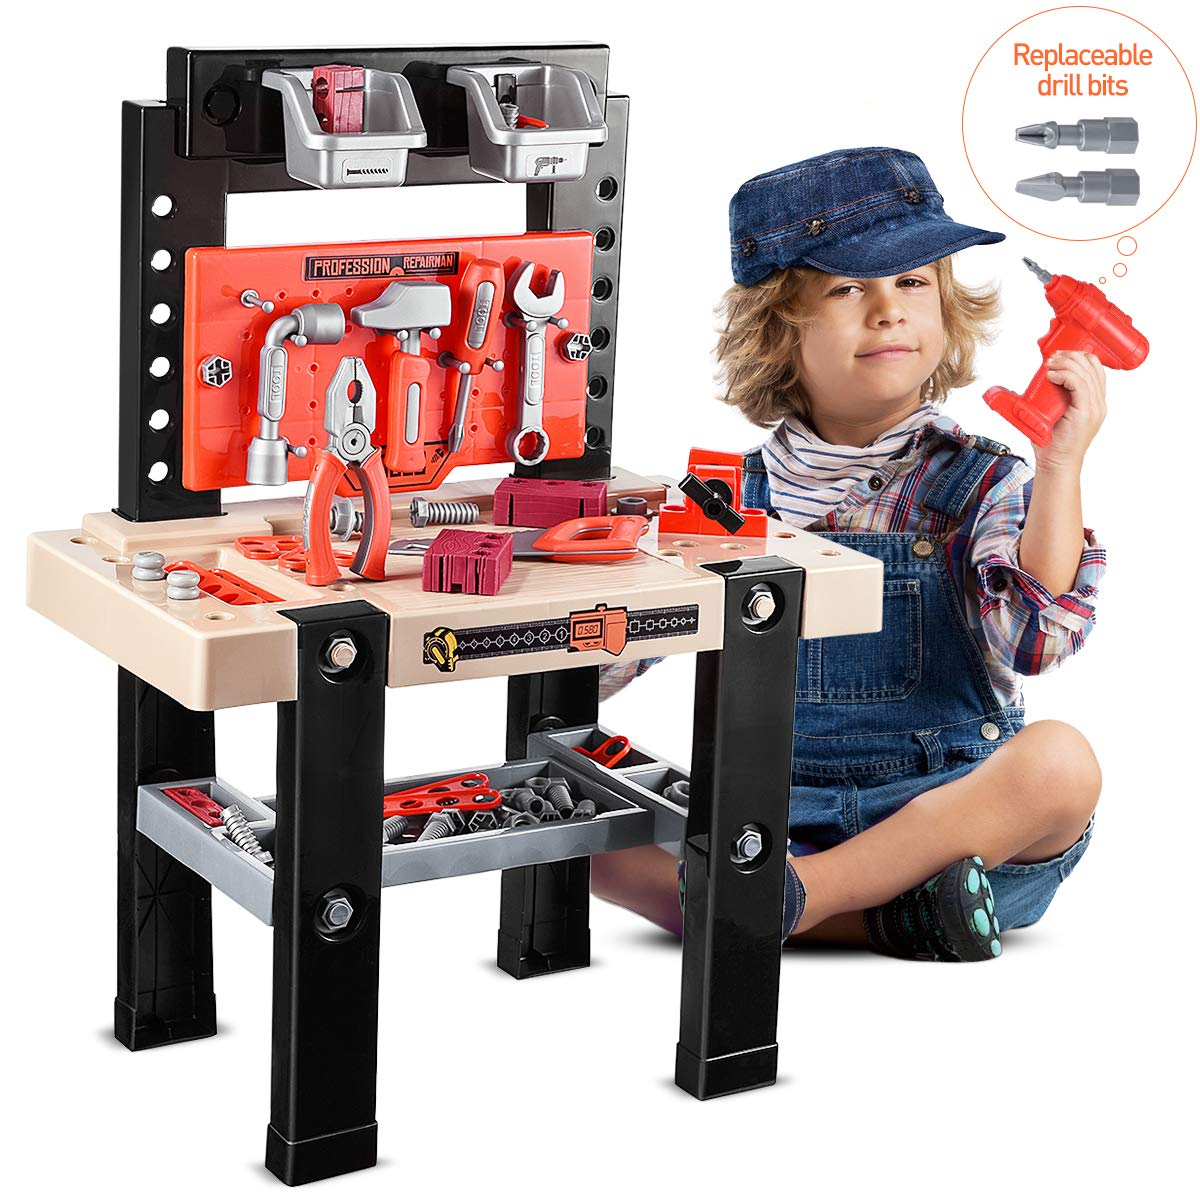 iBaseToy Toy Tool Bench, Kids Power Workbench, 91Piece Construction Toy Bench Set with Electric Drill, Educational Play & Pretend Play Workbench for Toddlers by iBaseToy (Image #7)